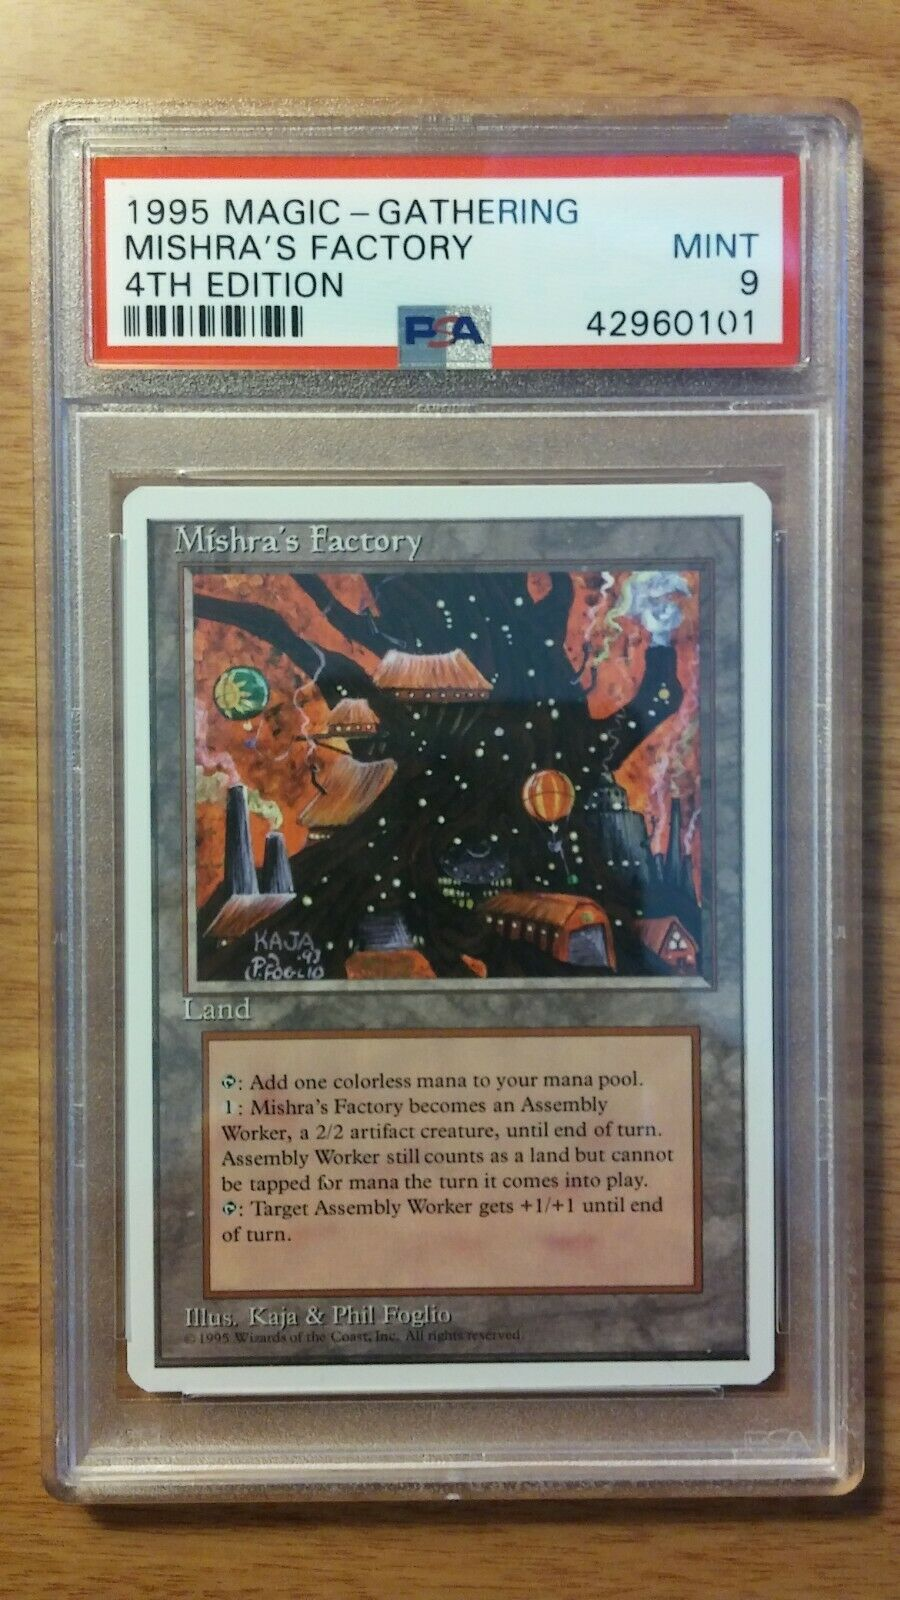 PSA 9 1995 MTG Magic - Gathering 4th Edition Mishra's Factory - MINT